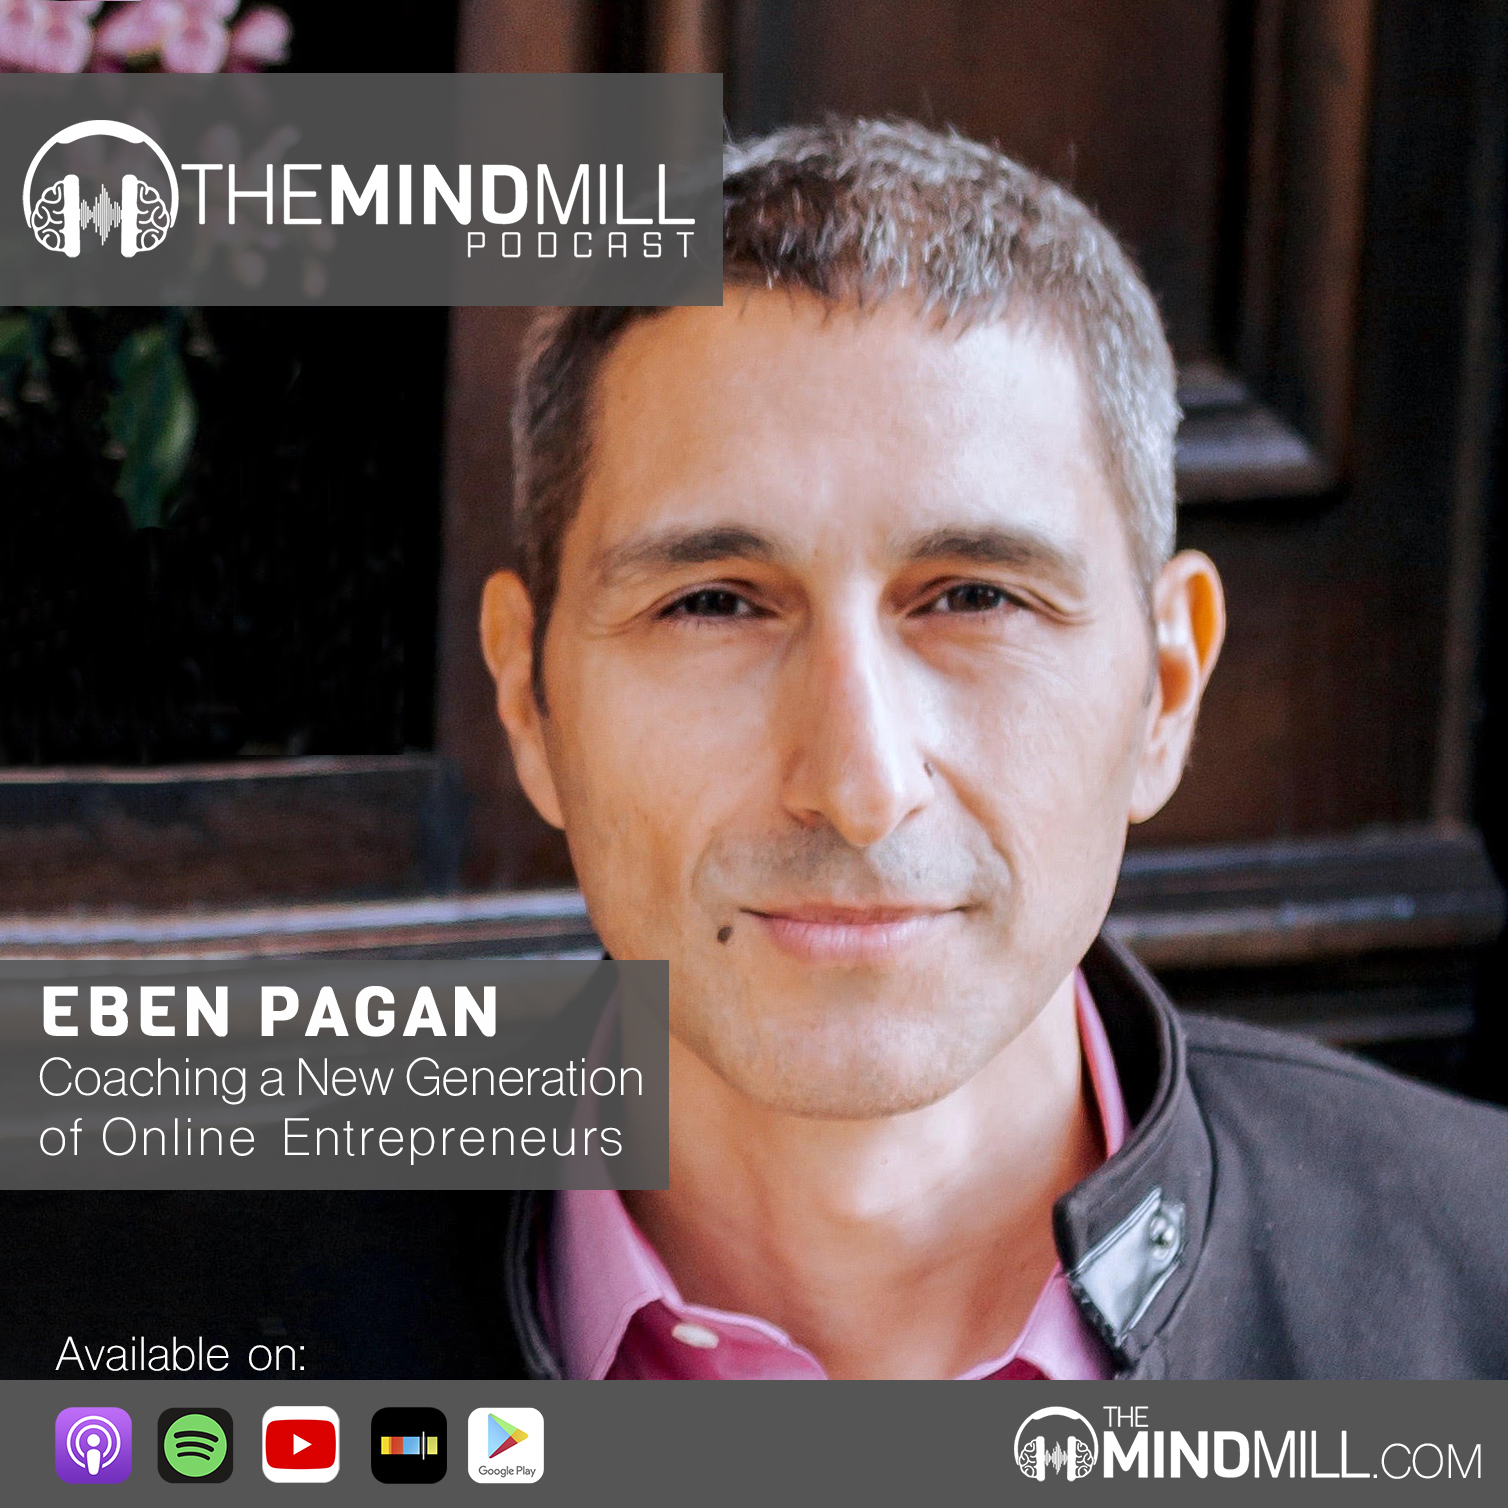 Eben Pagan | Coaching a New Generation of Online Entrepreneurs